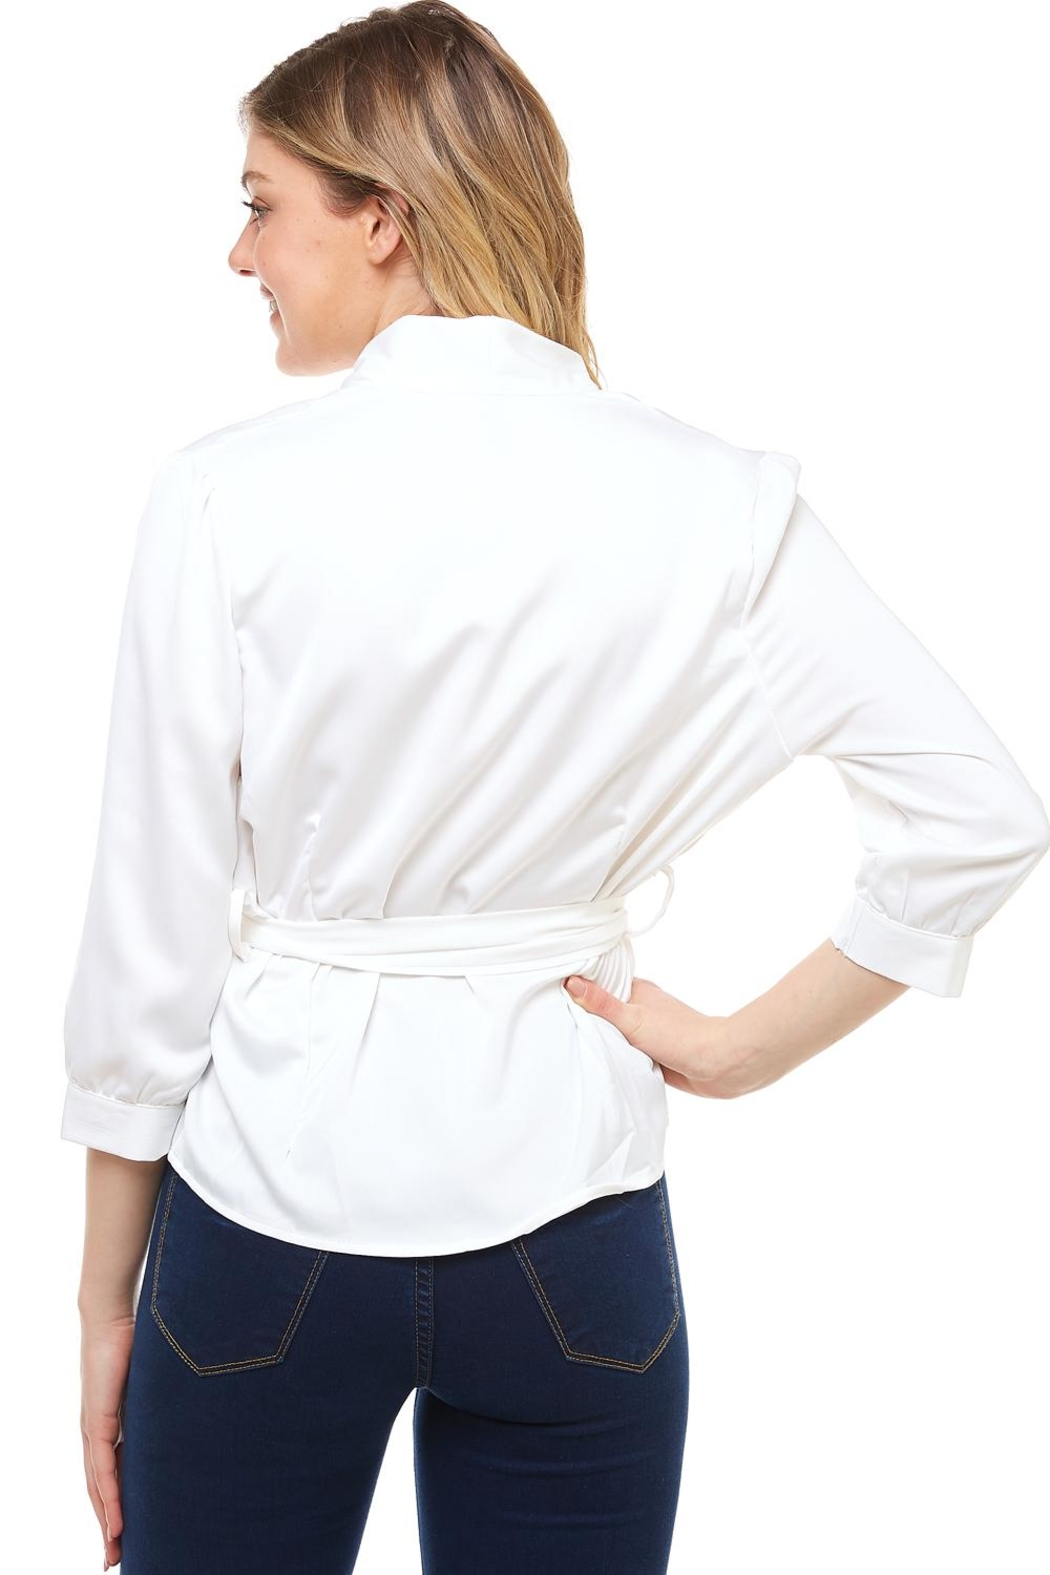 Venti 6 Wrap Tie Blouse - Side Cropped Image